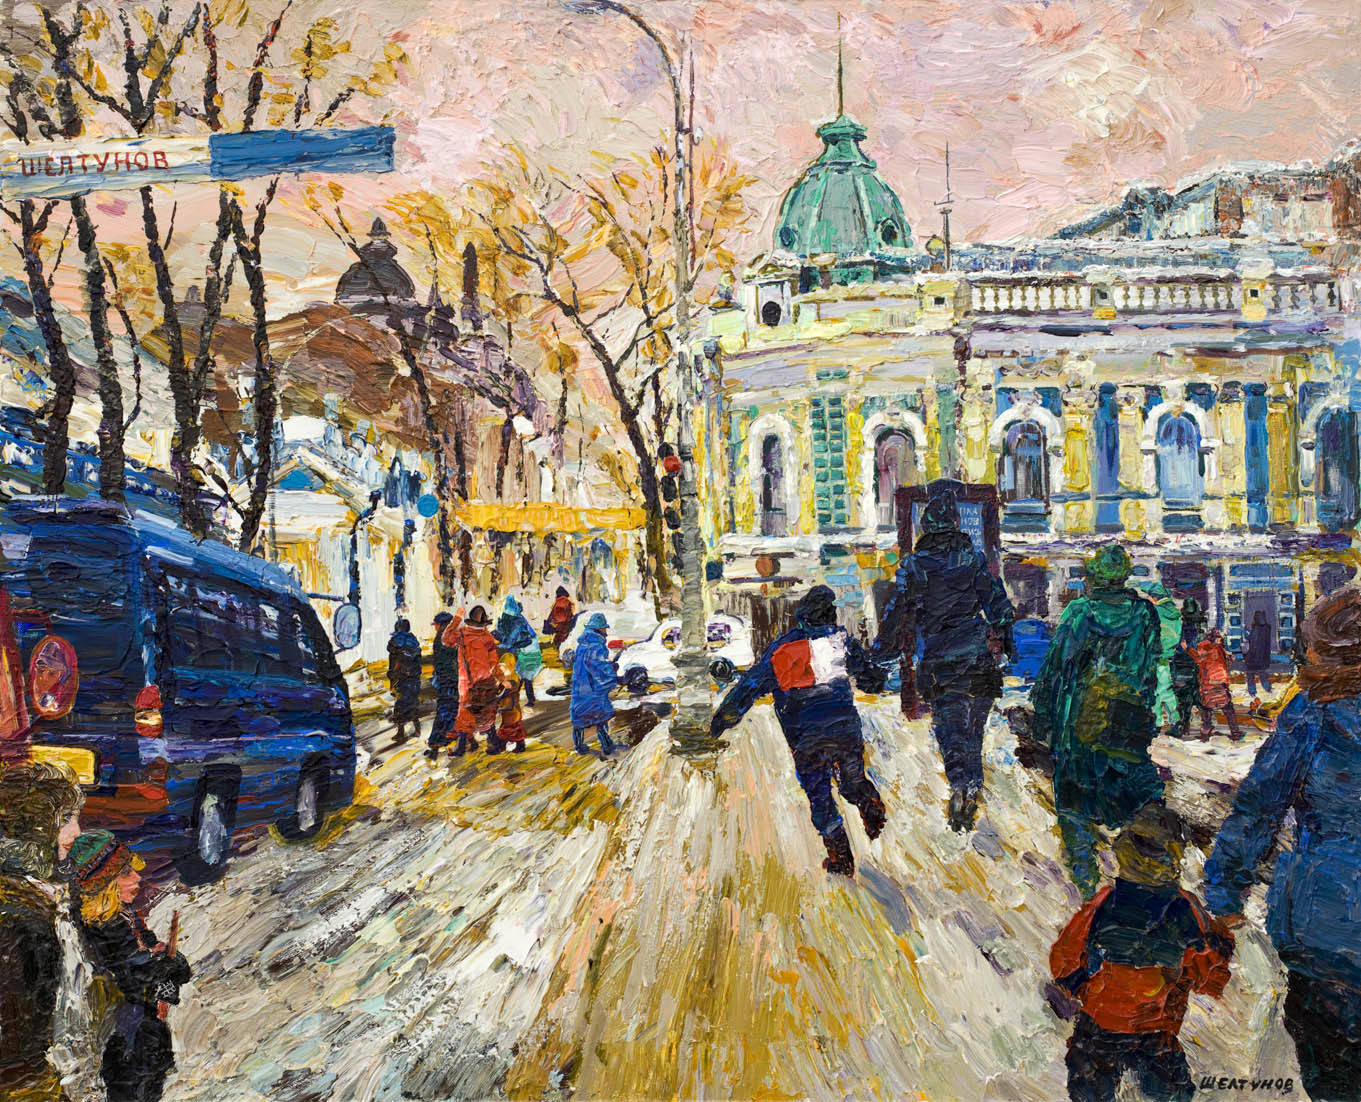 Alexander Sheltunov. The Downtown 市中心 2006 Oil on canvas 油画底布 81 × 100